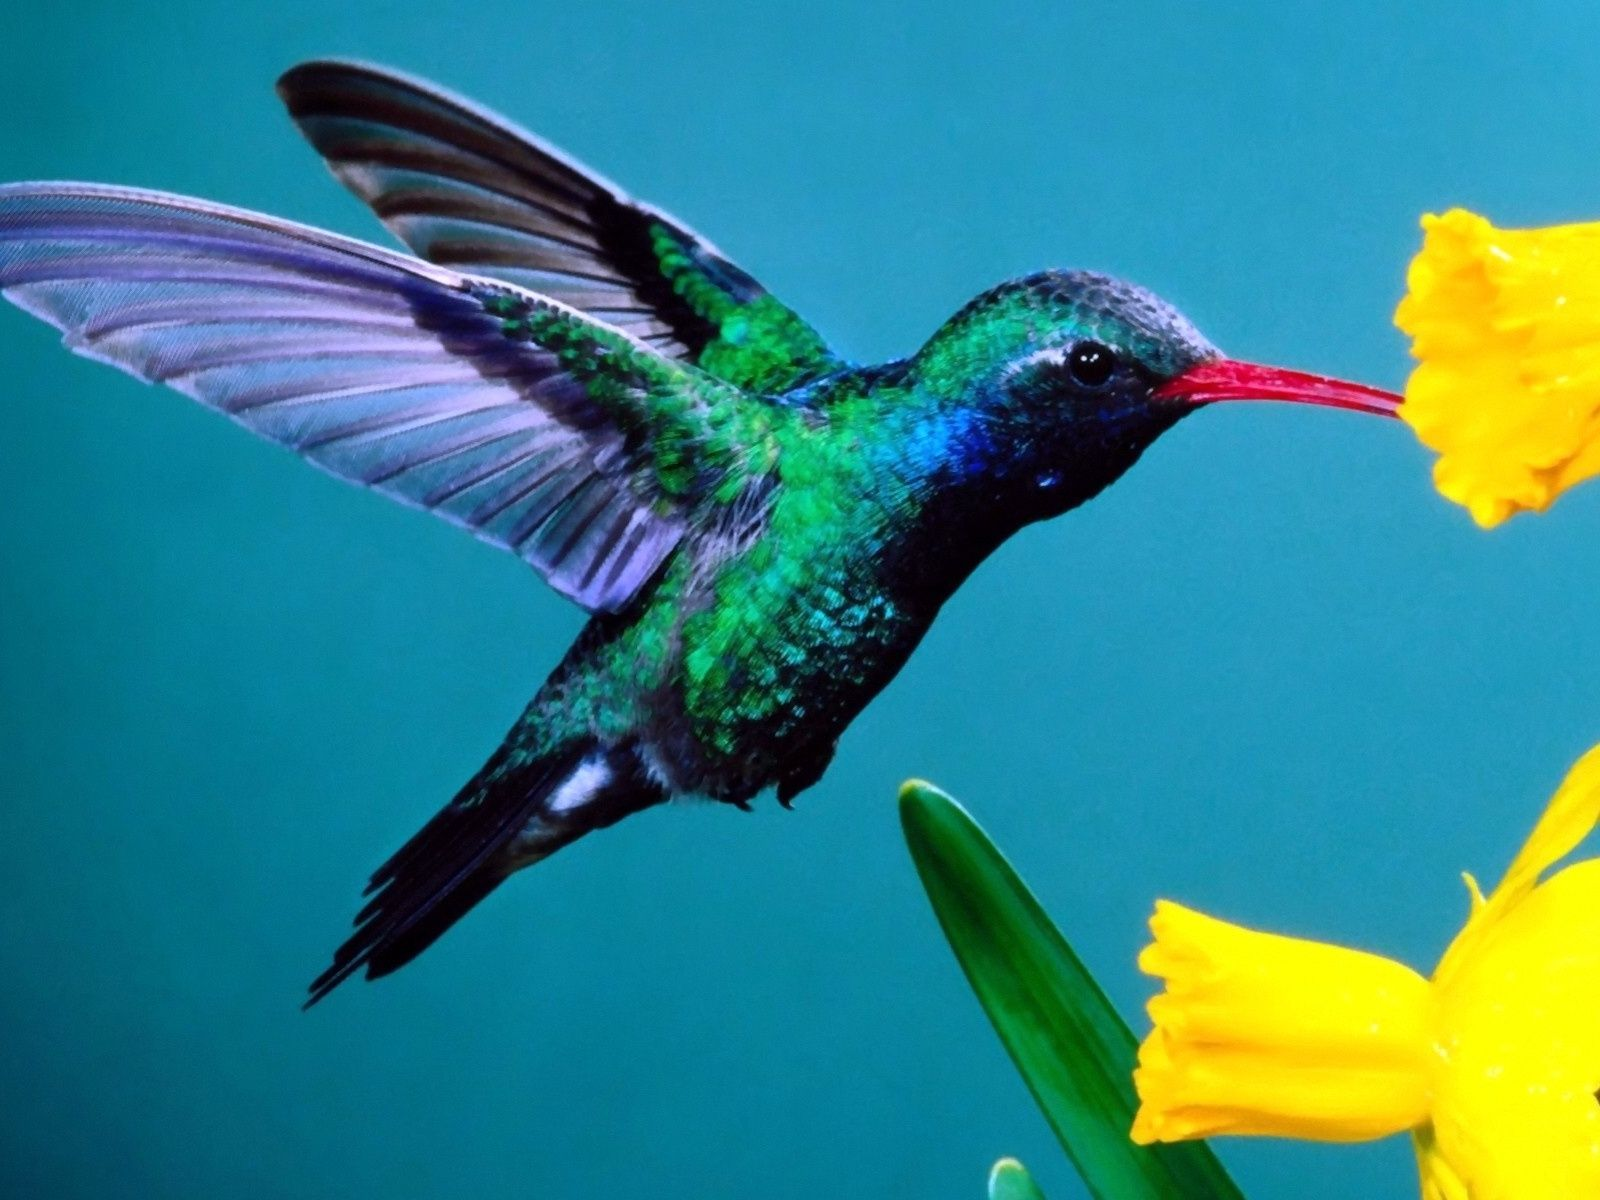 Mobile Wallpapers Cell Phone Wallpapers Hd Mobile Wallpapers Beautiful Birds Cute Birds Animal Medicine